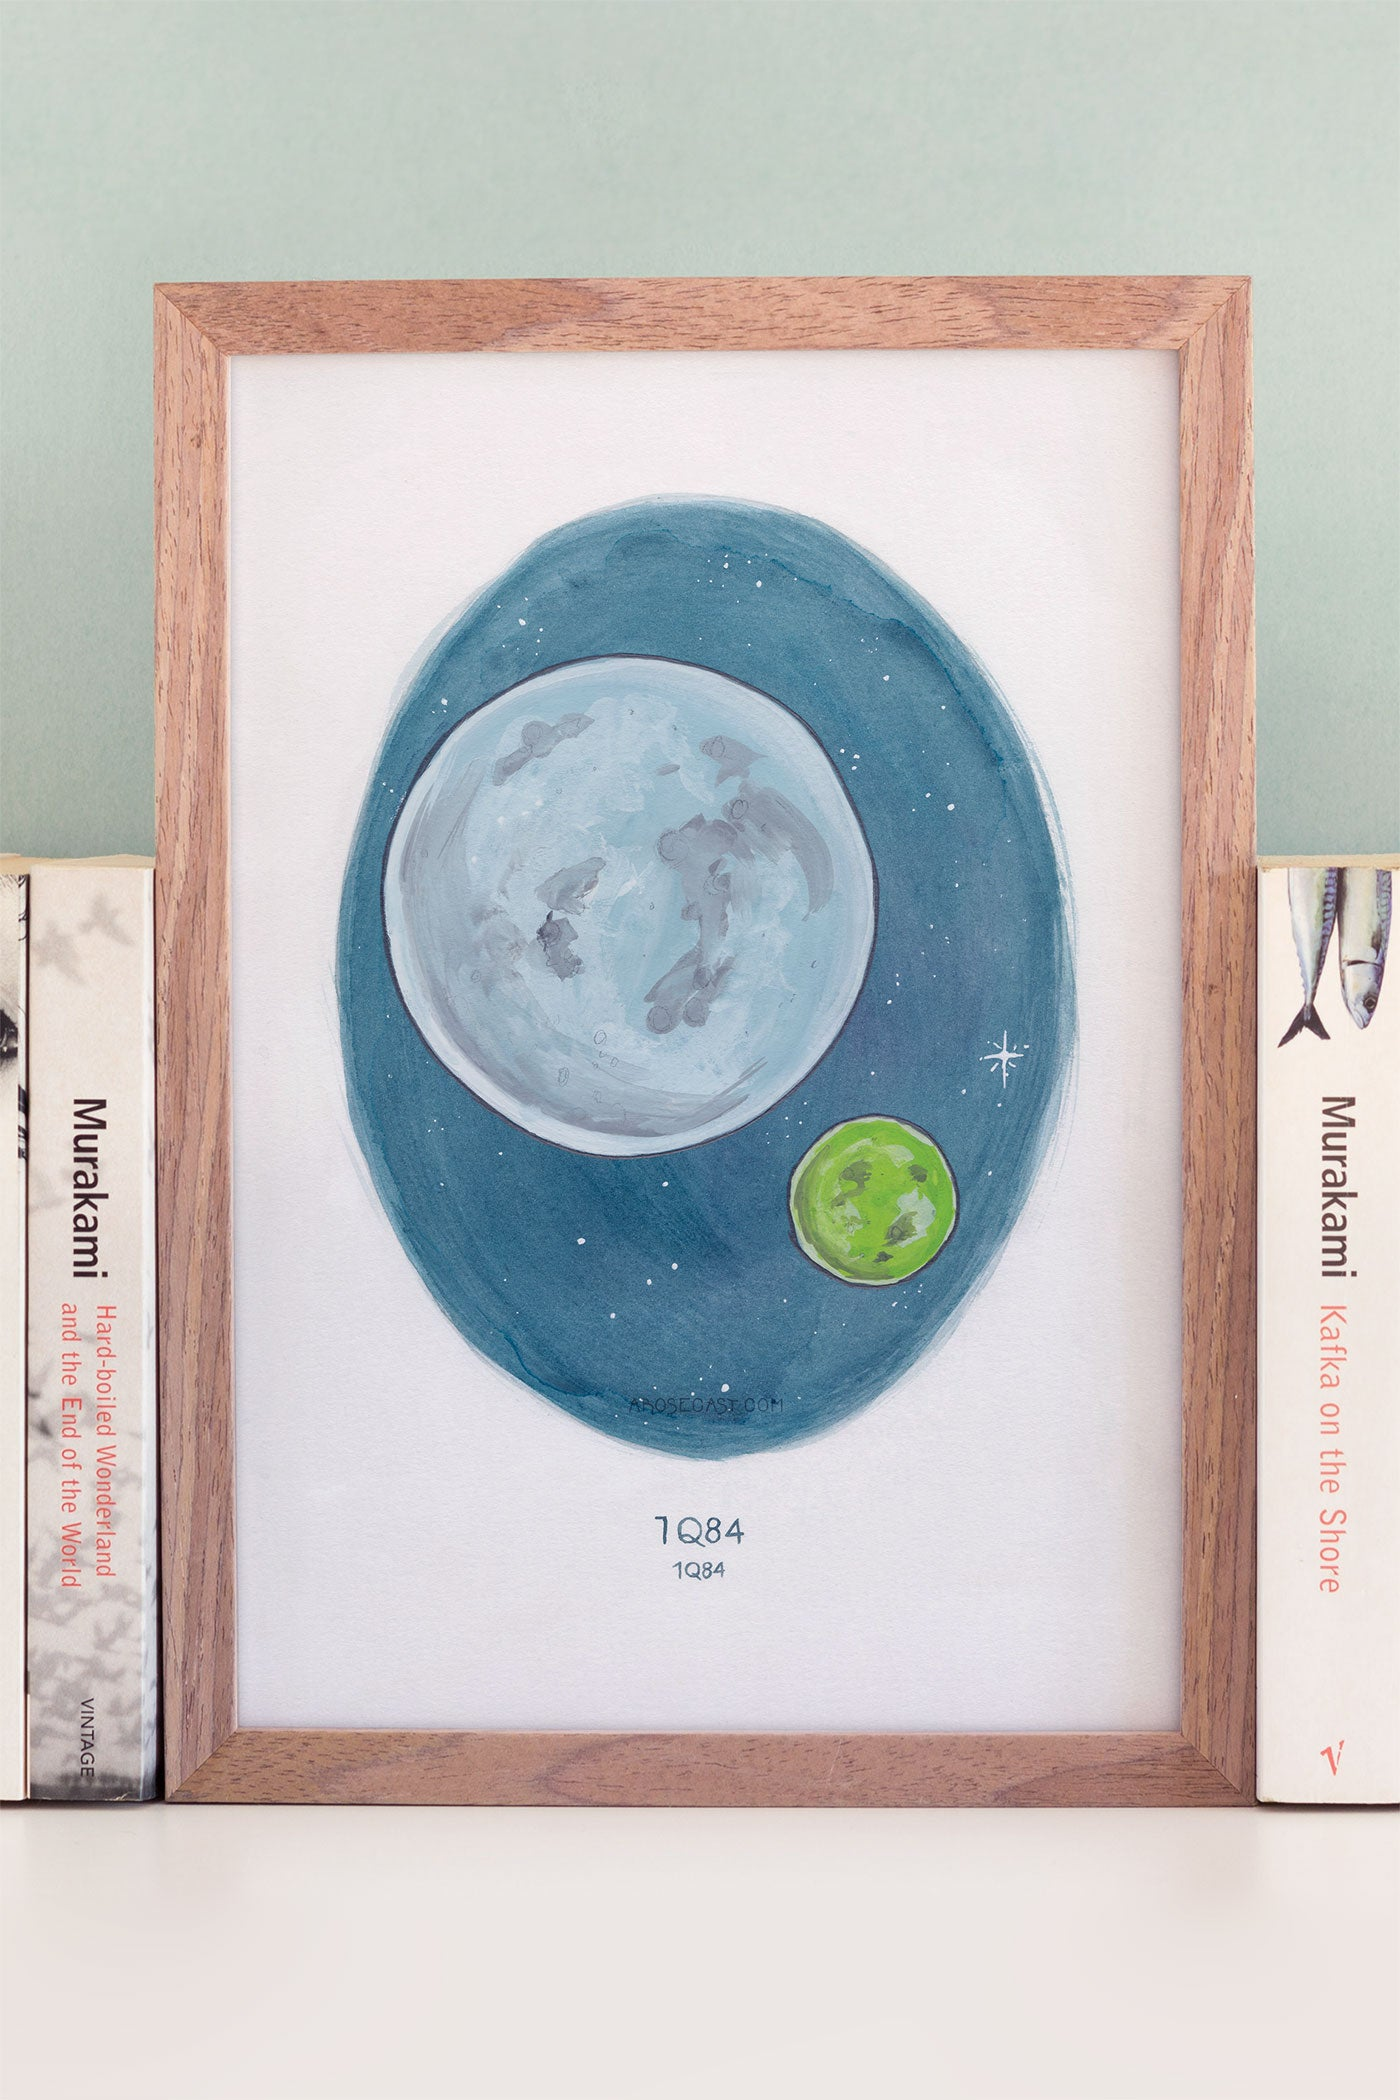 Haruki Murakami's 1Q84 Novel Illustration Art Print - A Rose Cast